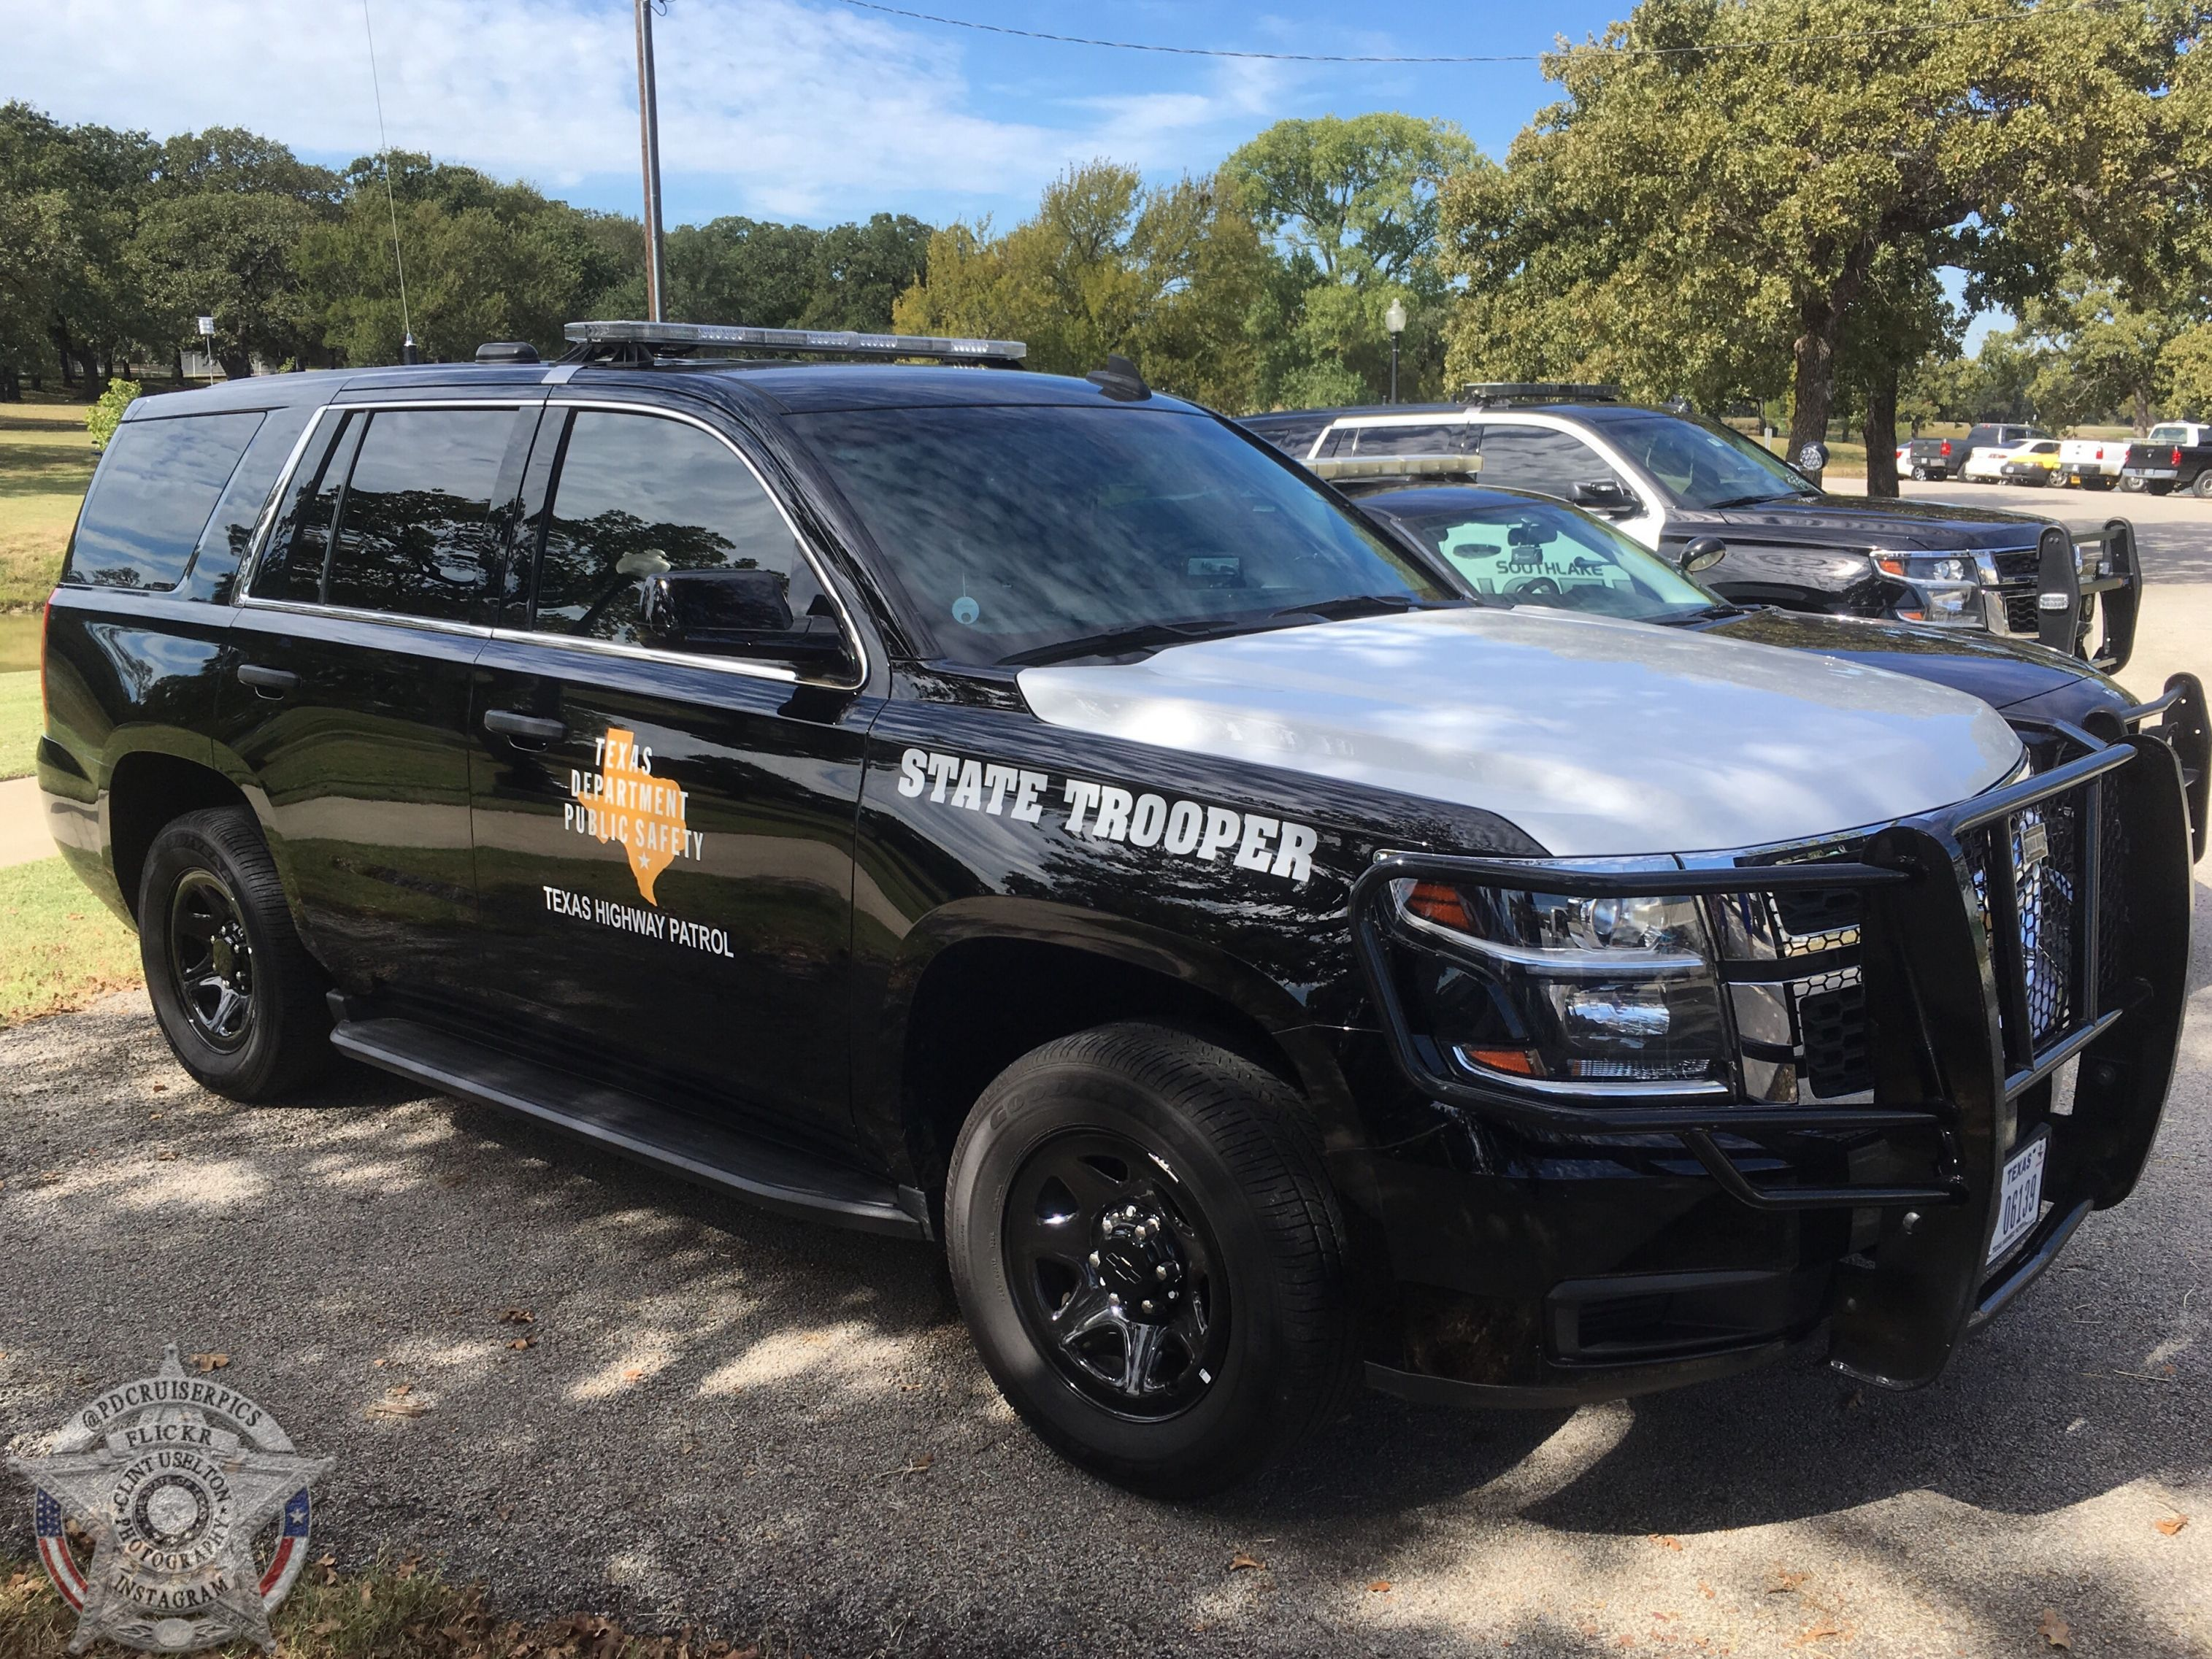 Texas DPS 2015 Chevy Tahoe Texas state trooper, 2015